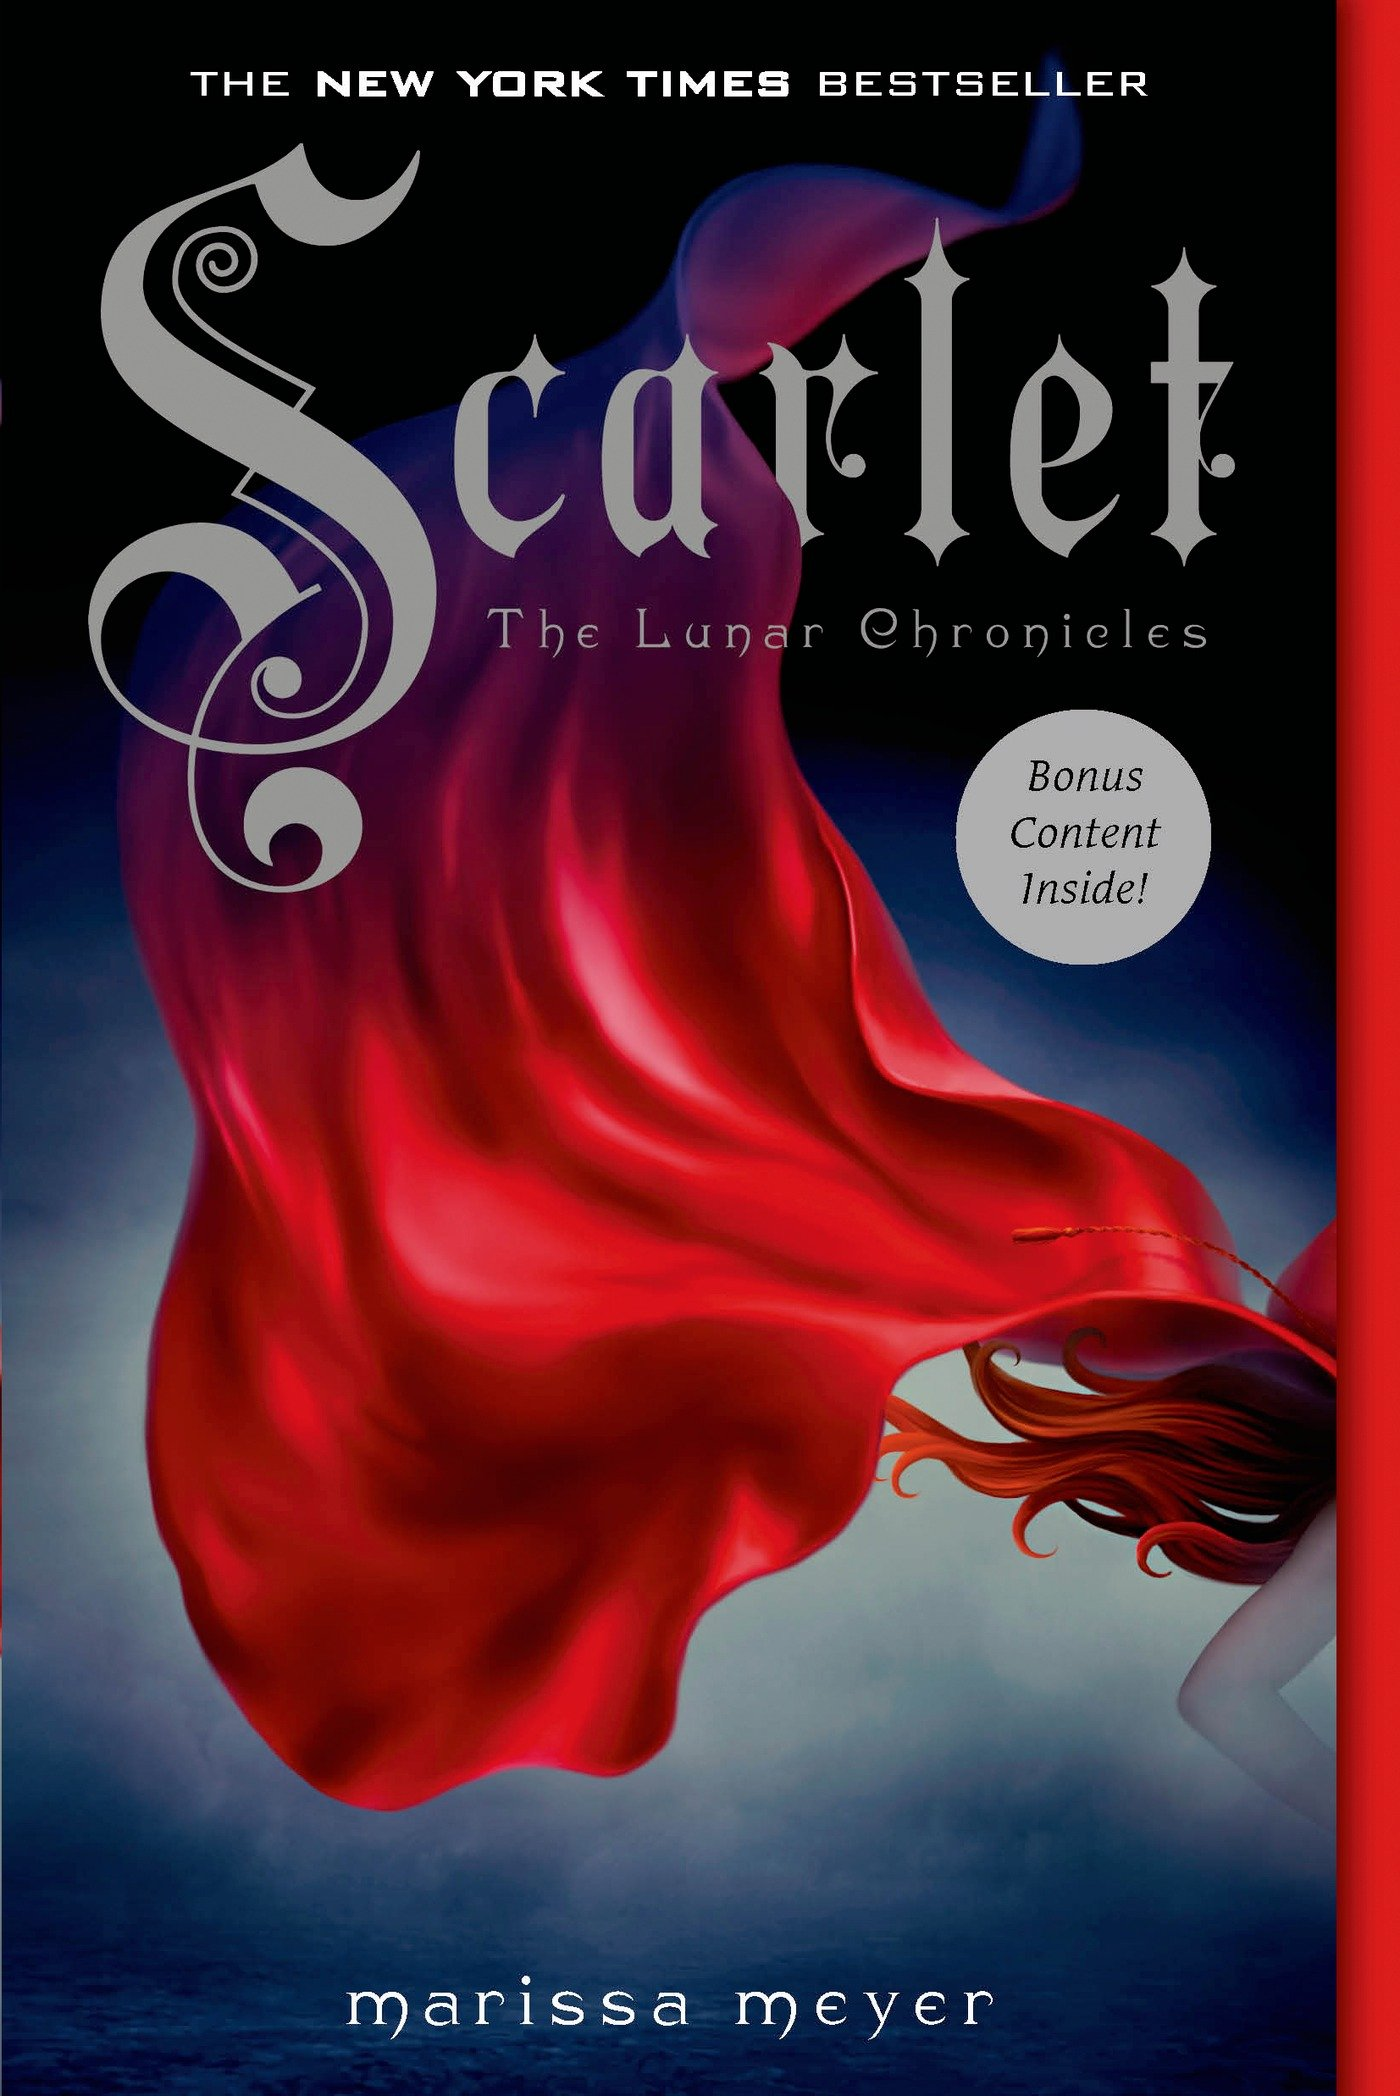 Image result for scarlet by marissa meyer